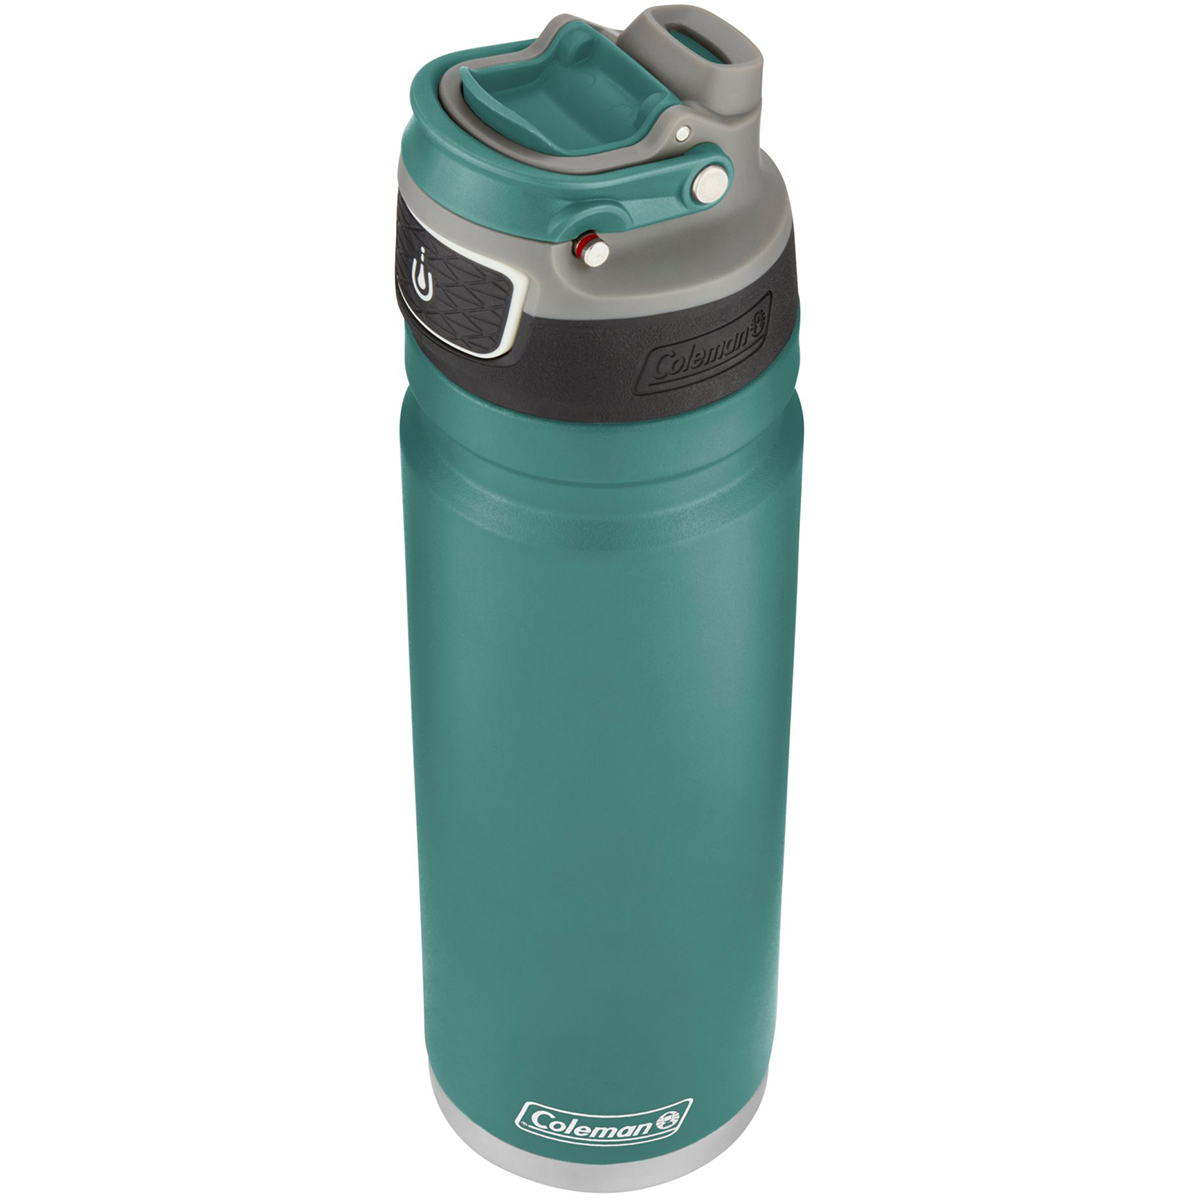 Coleman-24-oz-Free-Flow-Autoseal-Insulated-Stainless-Steel-Water-Bottle thumbnail 20